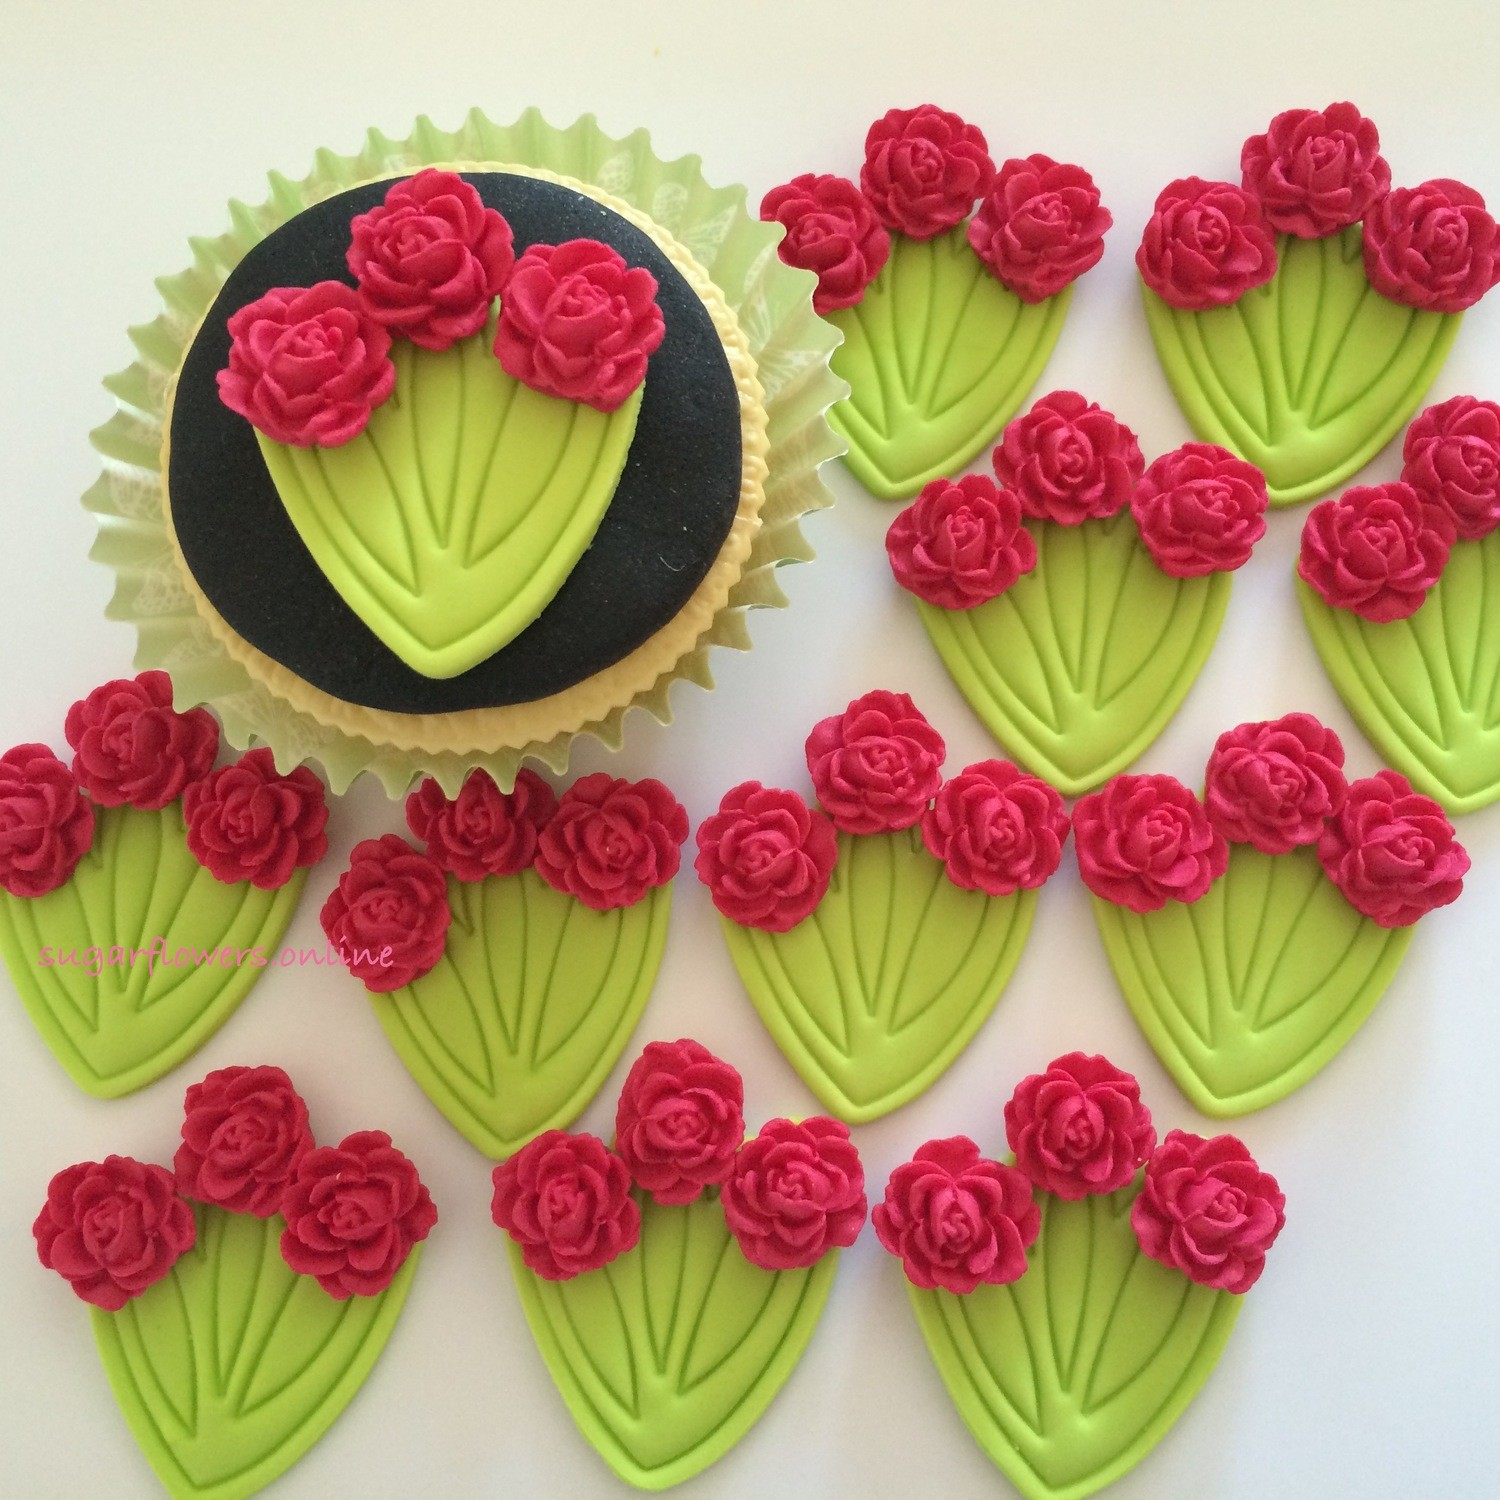 Red Rose Bunches